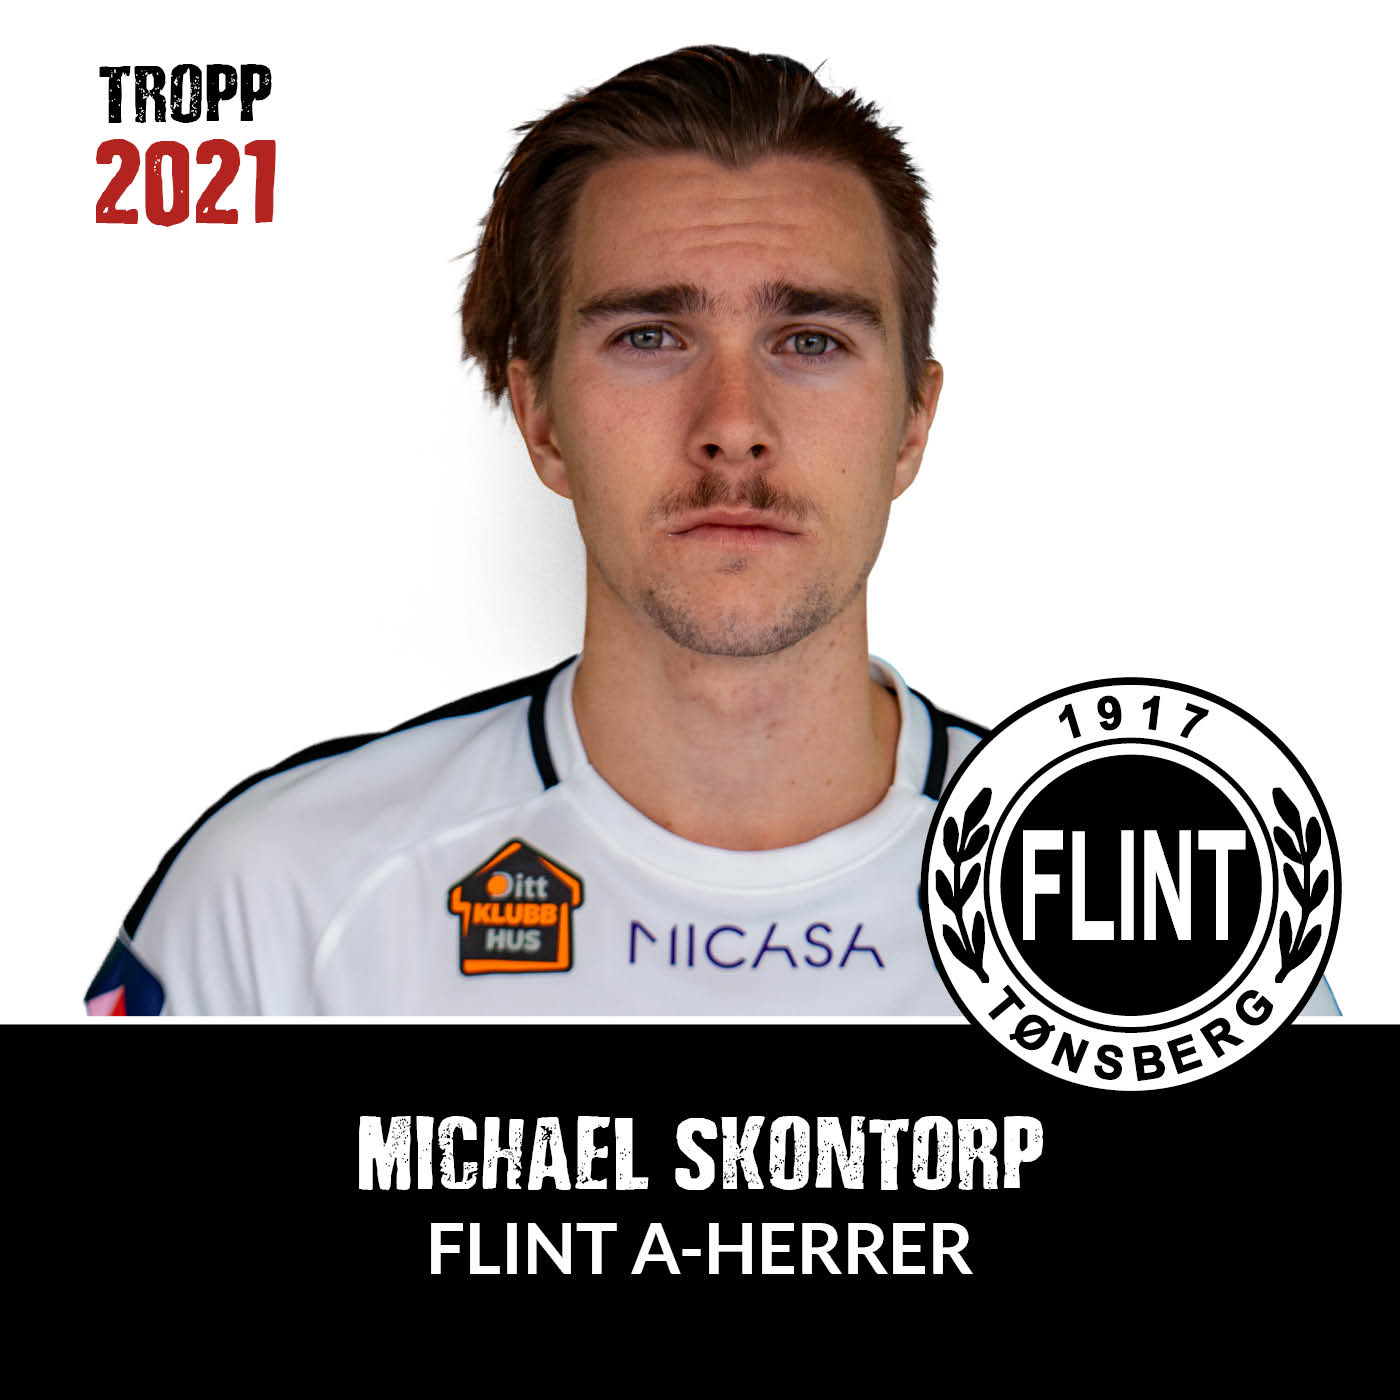 https://www.flintfotball.no/wp-content/uploads/2021/01/A-lag-herrer-2021-Michael-Skontorp.jpg